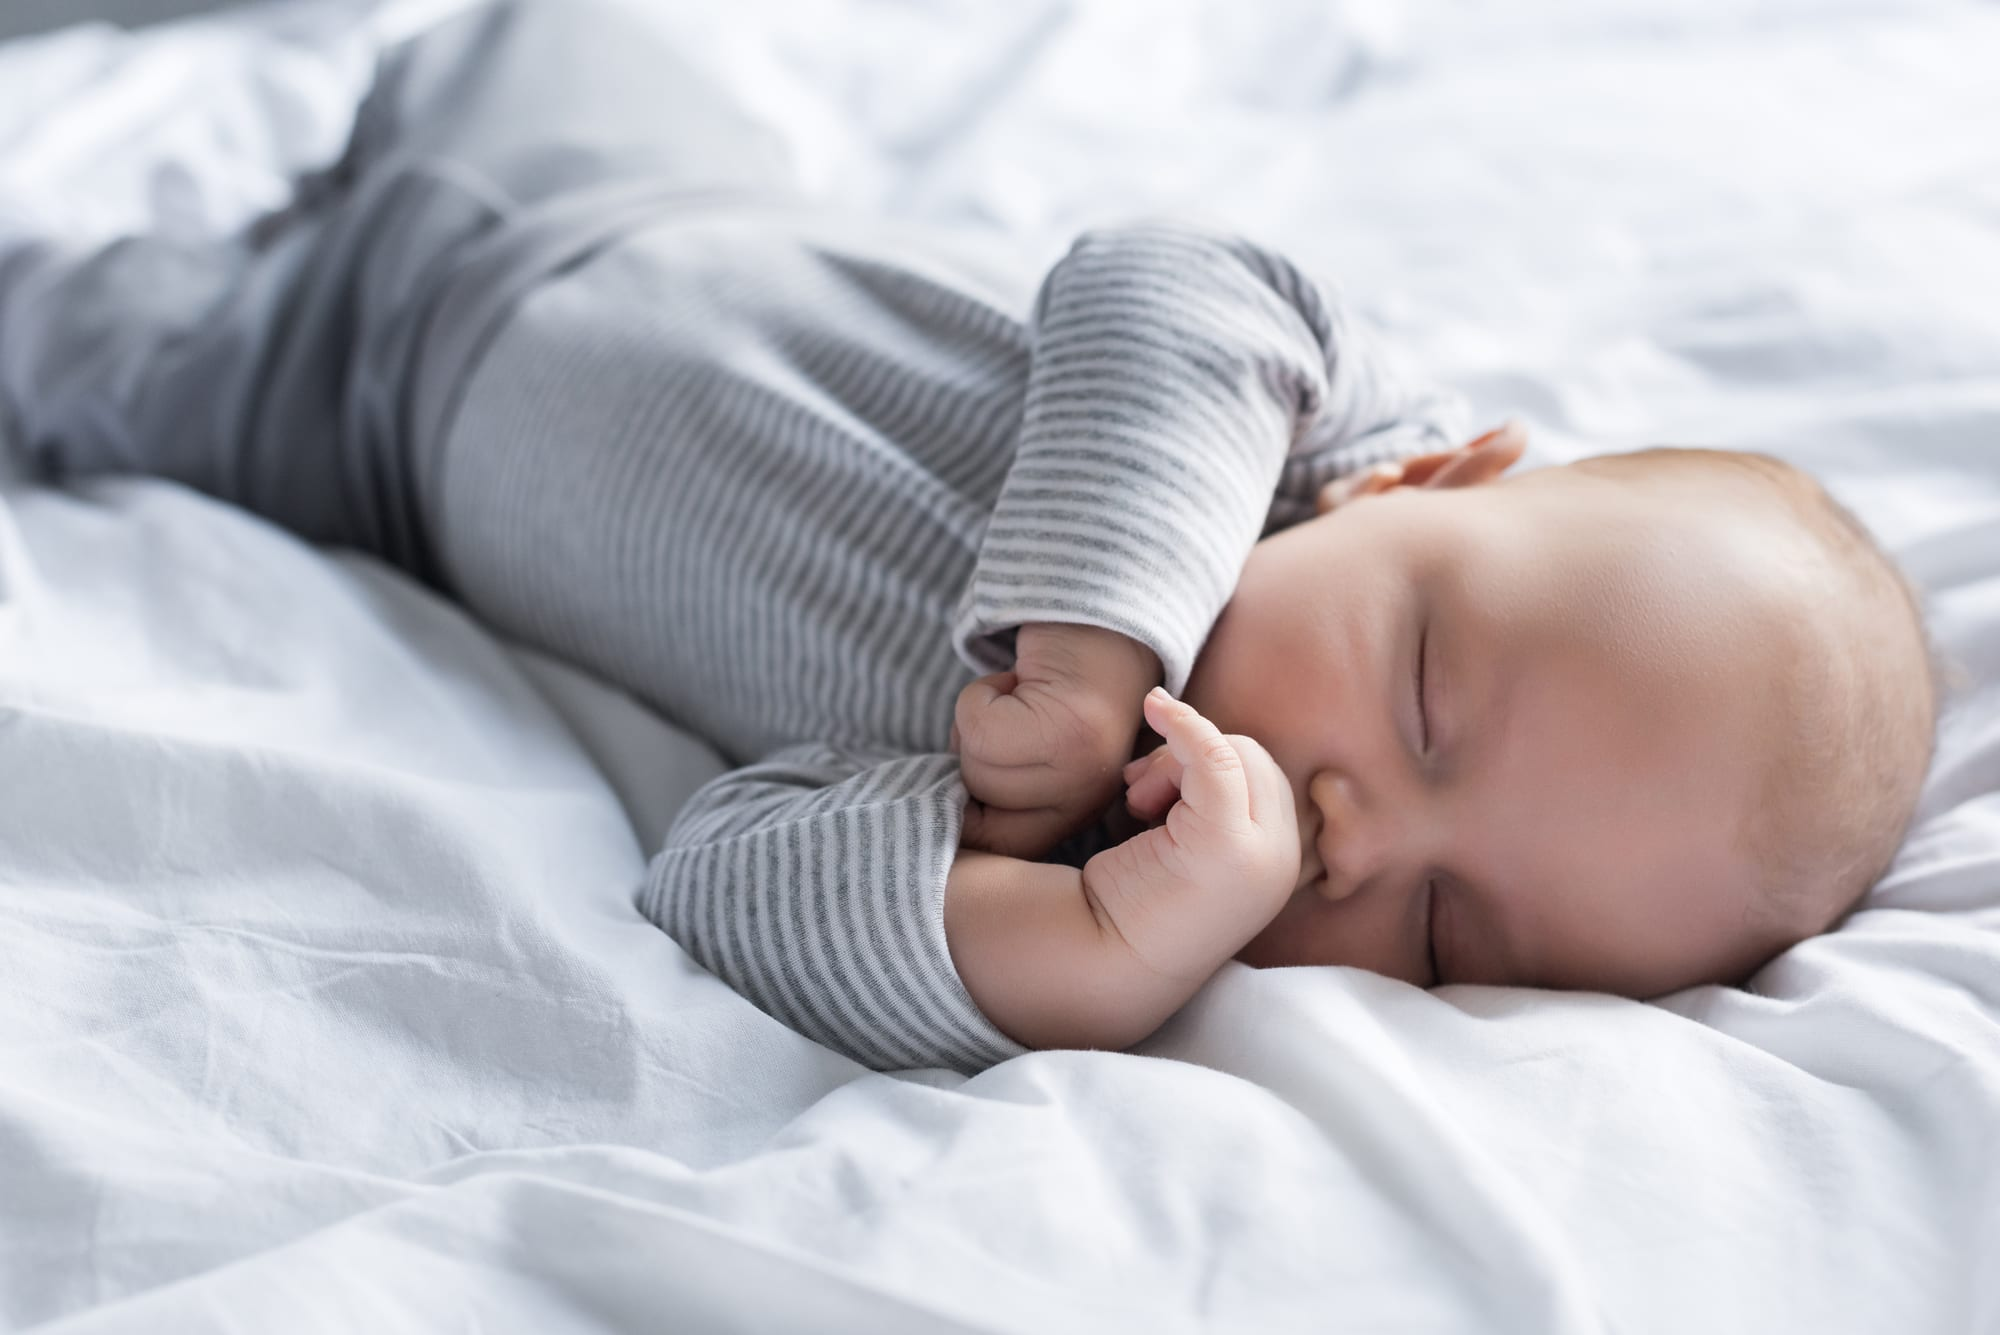 How to prevent SIDS #preventingSIDS #SIDSprevention #tipsforpreventingSIDS #howtopreventSIDS